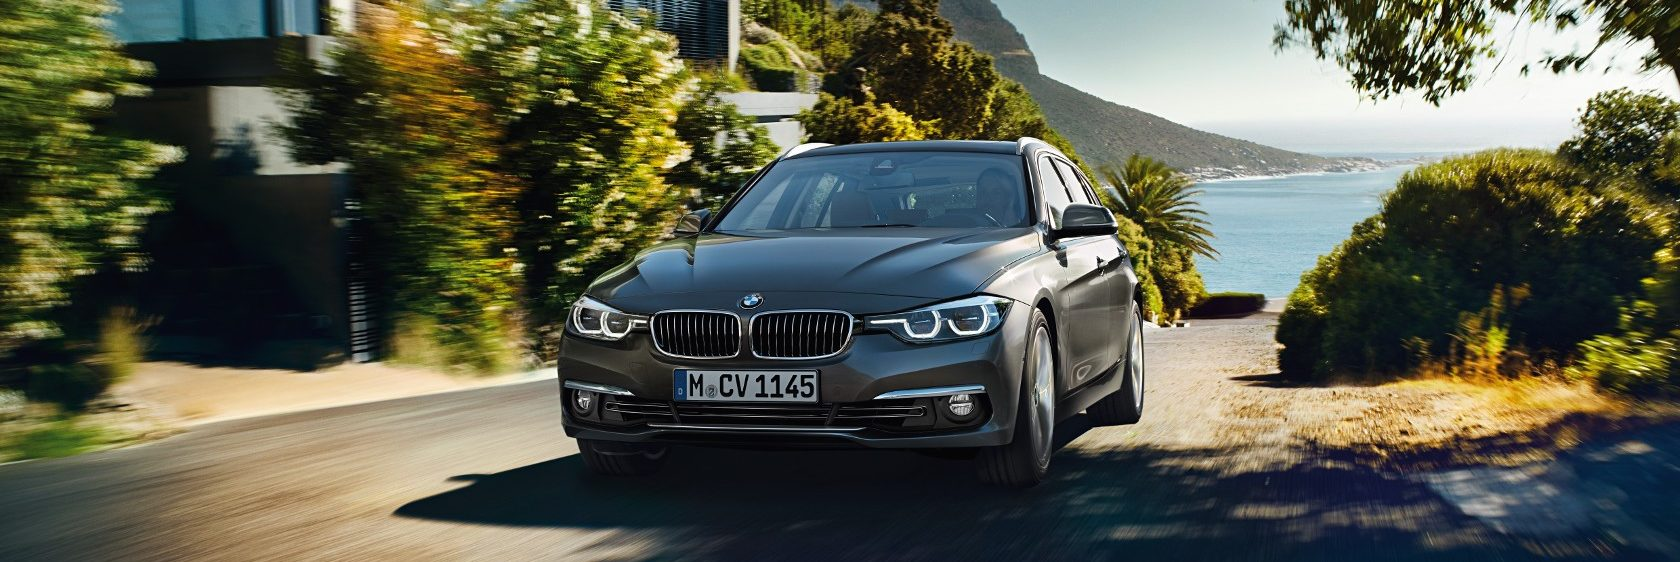 BMW 3 Series Touring driving on a road